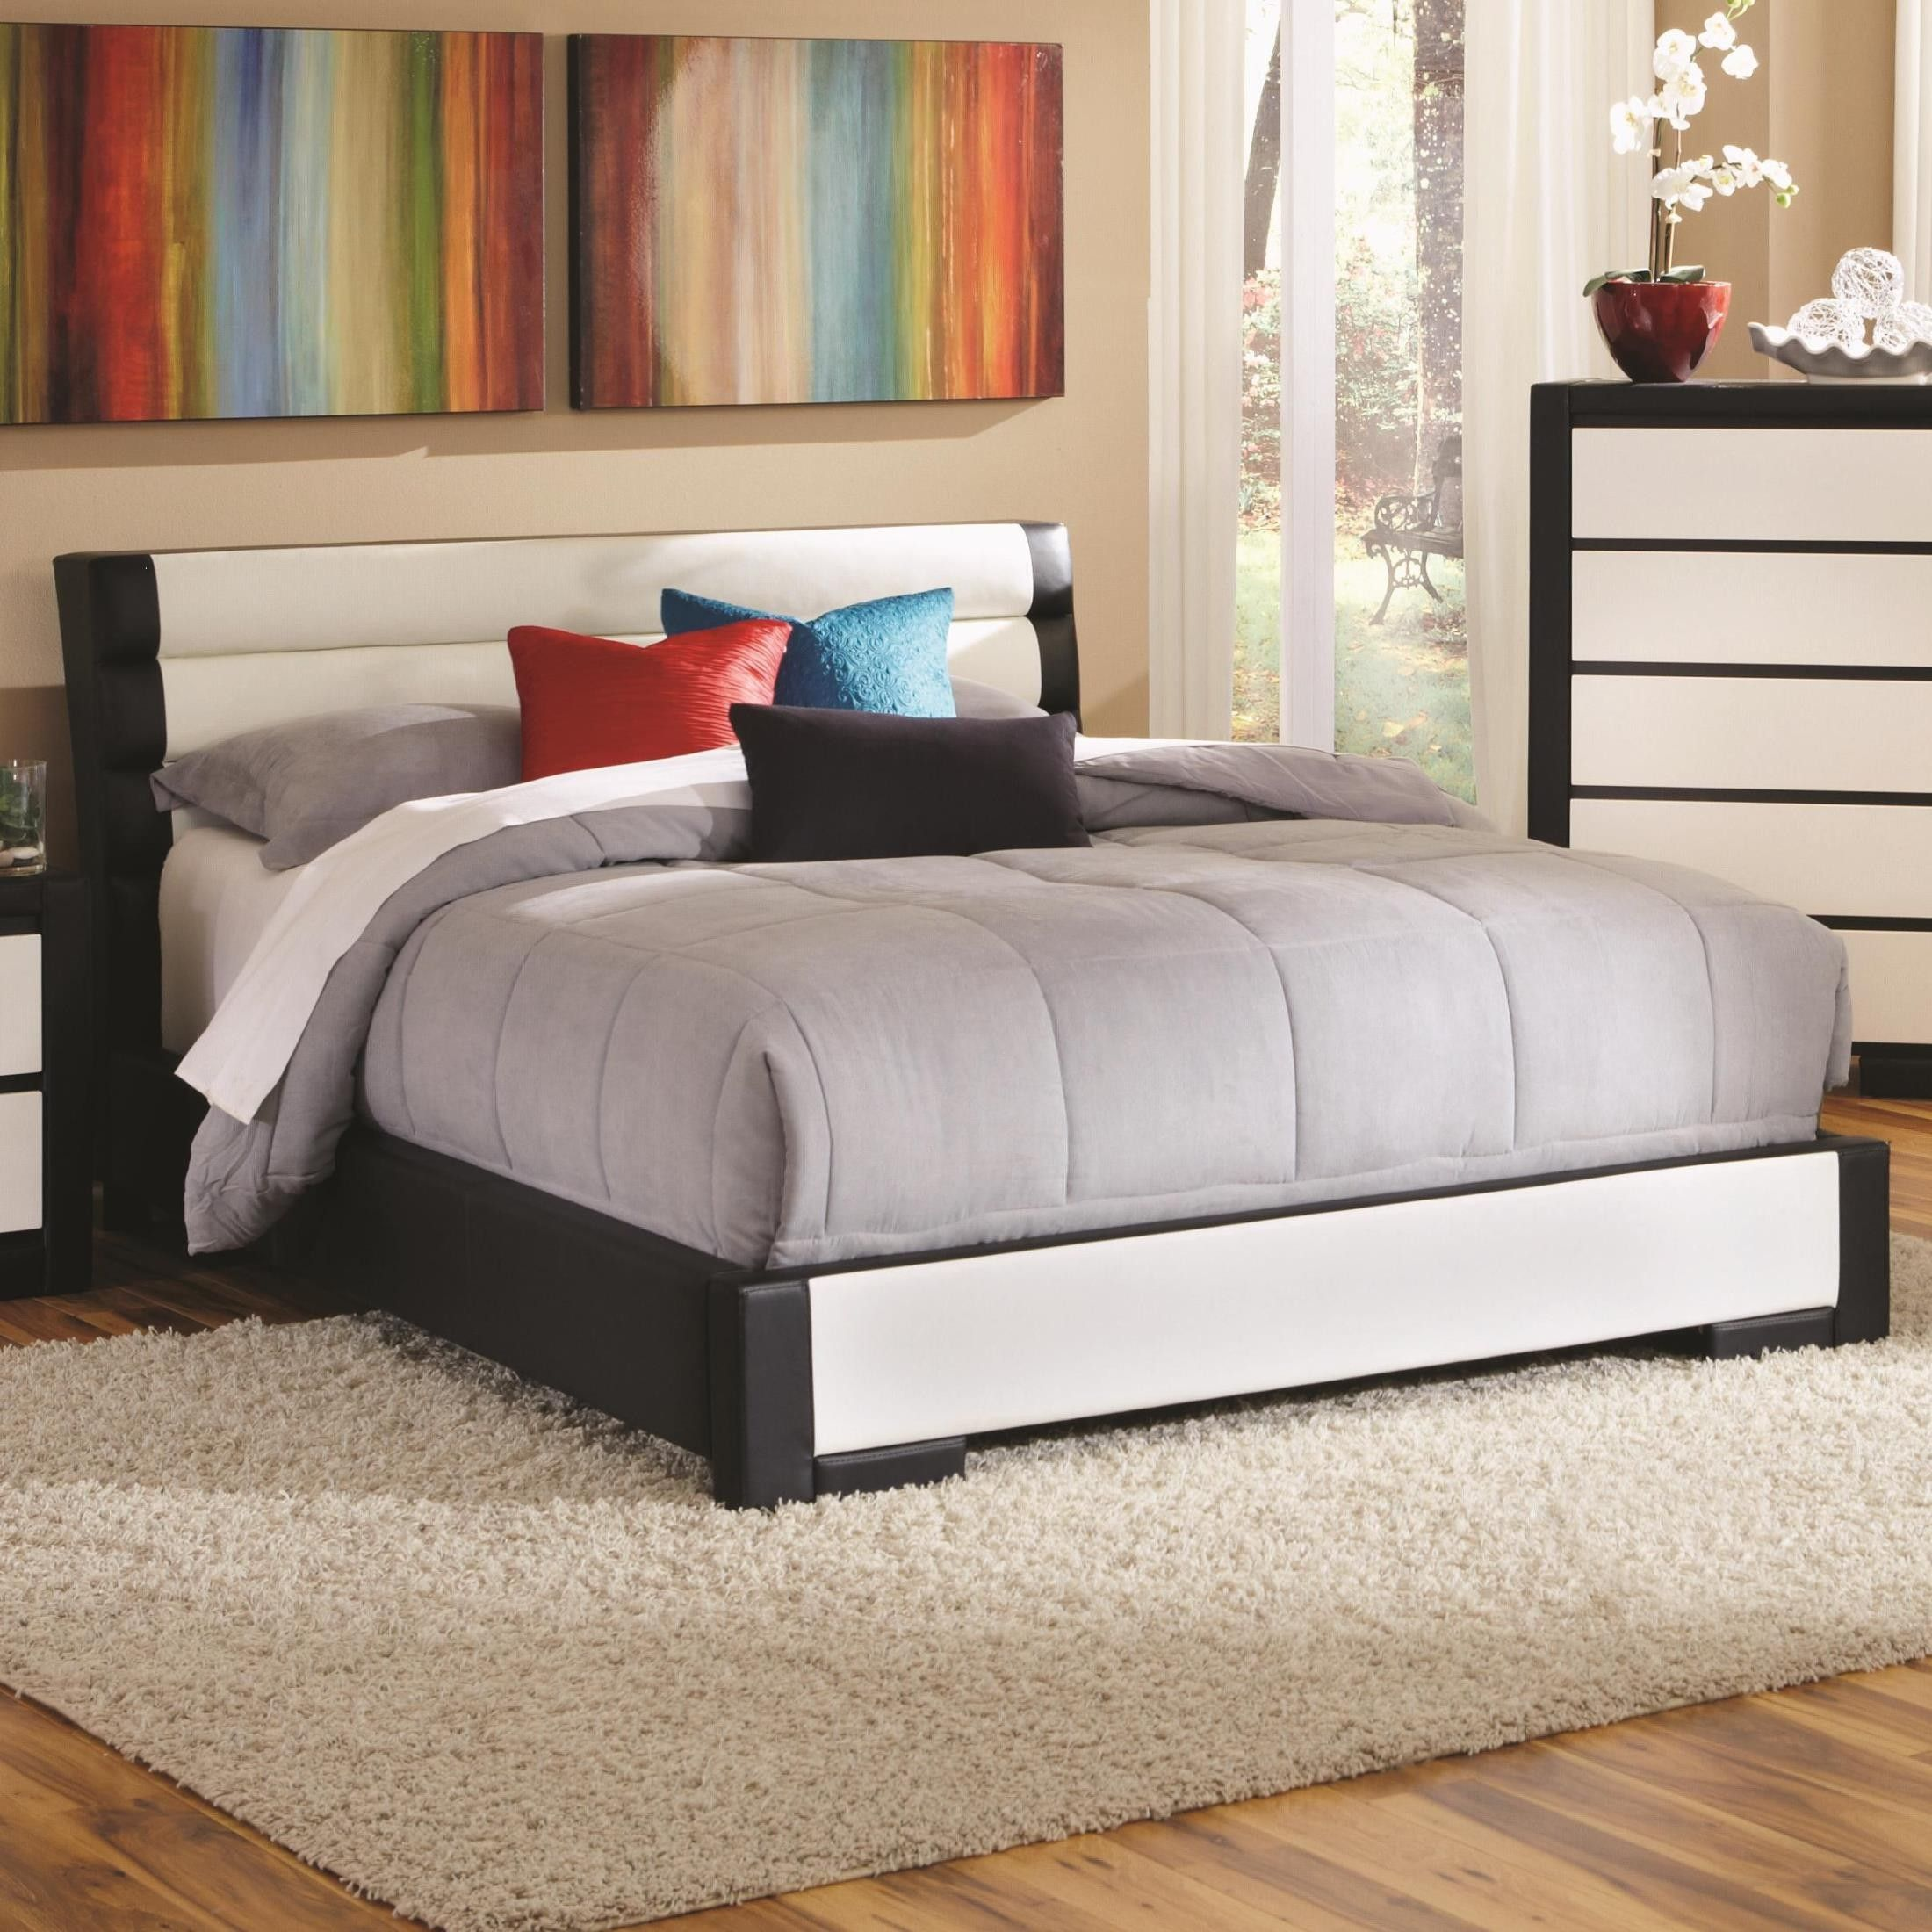 This Impressive Kimball Bedroom Set By Coaster Furniture Offers A New Look.  With Each Piece Upholstered In Black And White Man Made Leather, This Set  Puts A ...